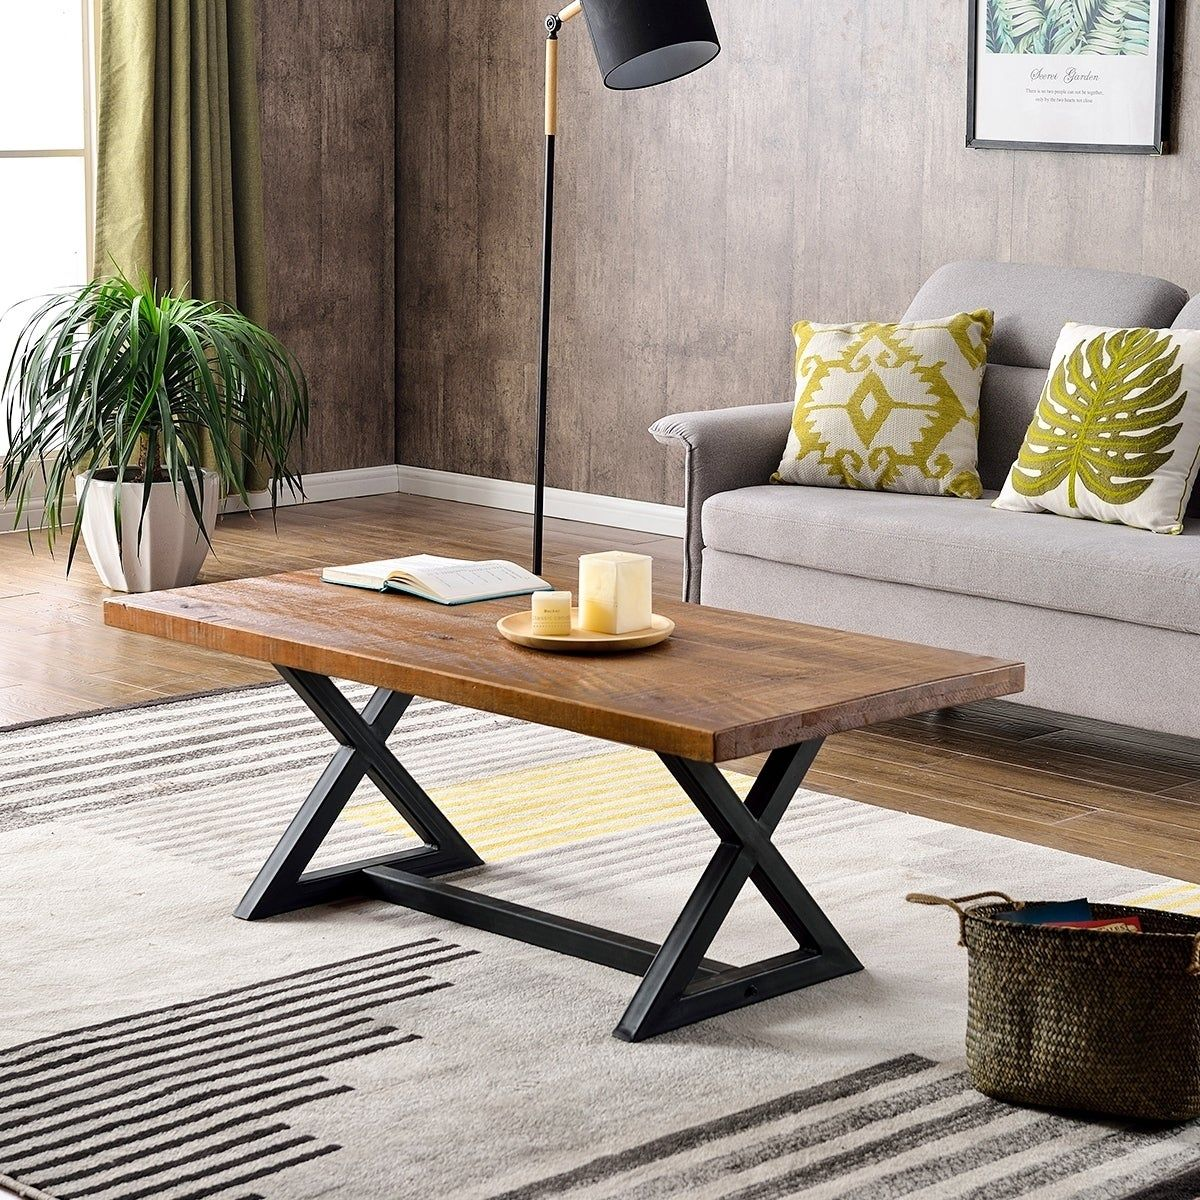 - Carbon Loft Wyldeck Rustic Industrial Coffee Table With X-shaped